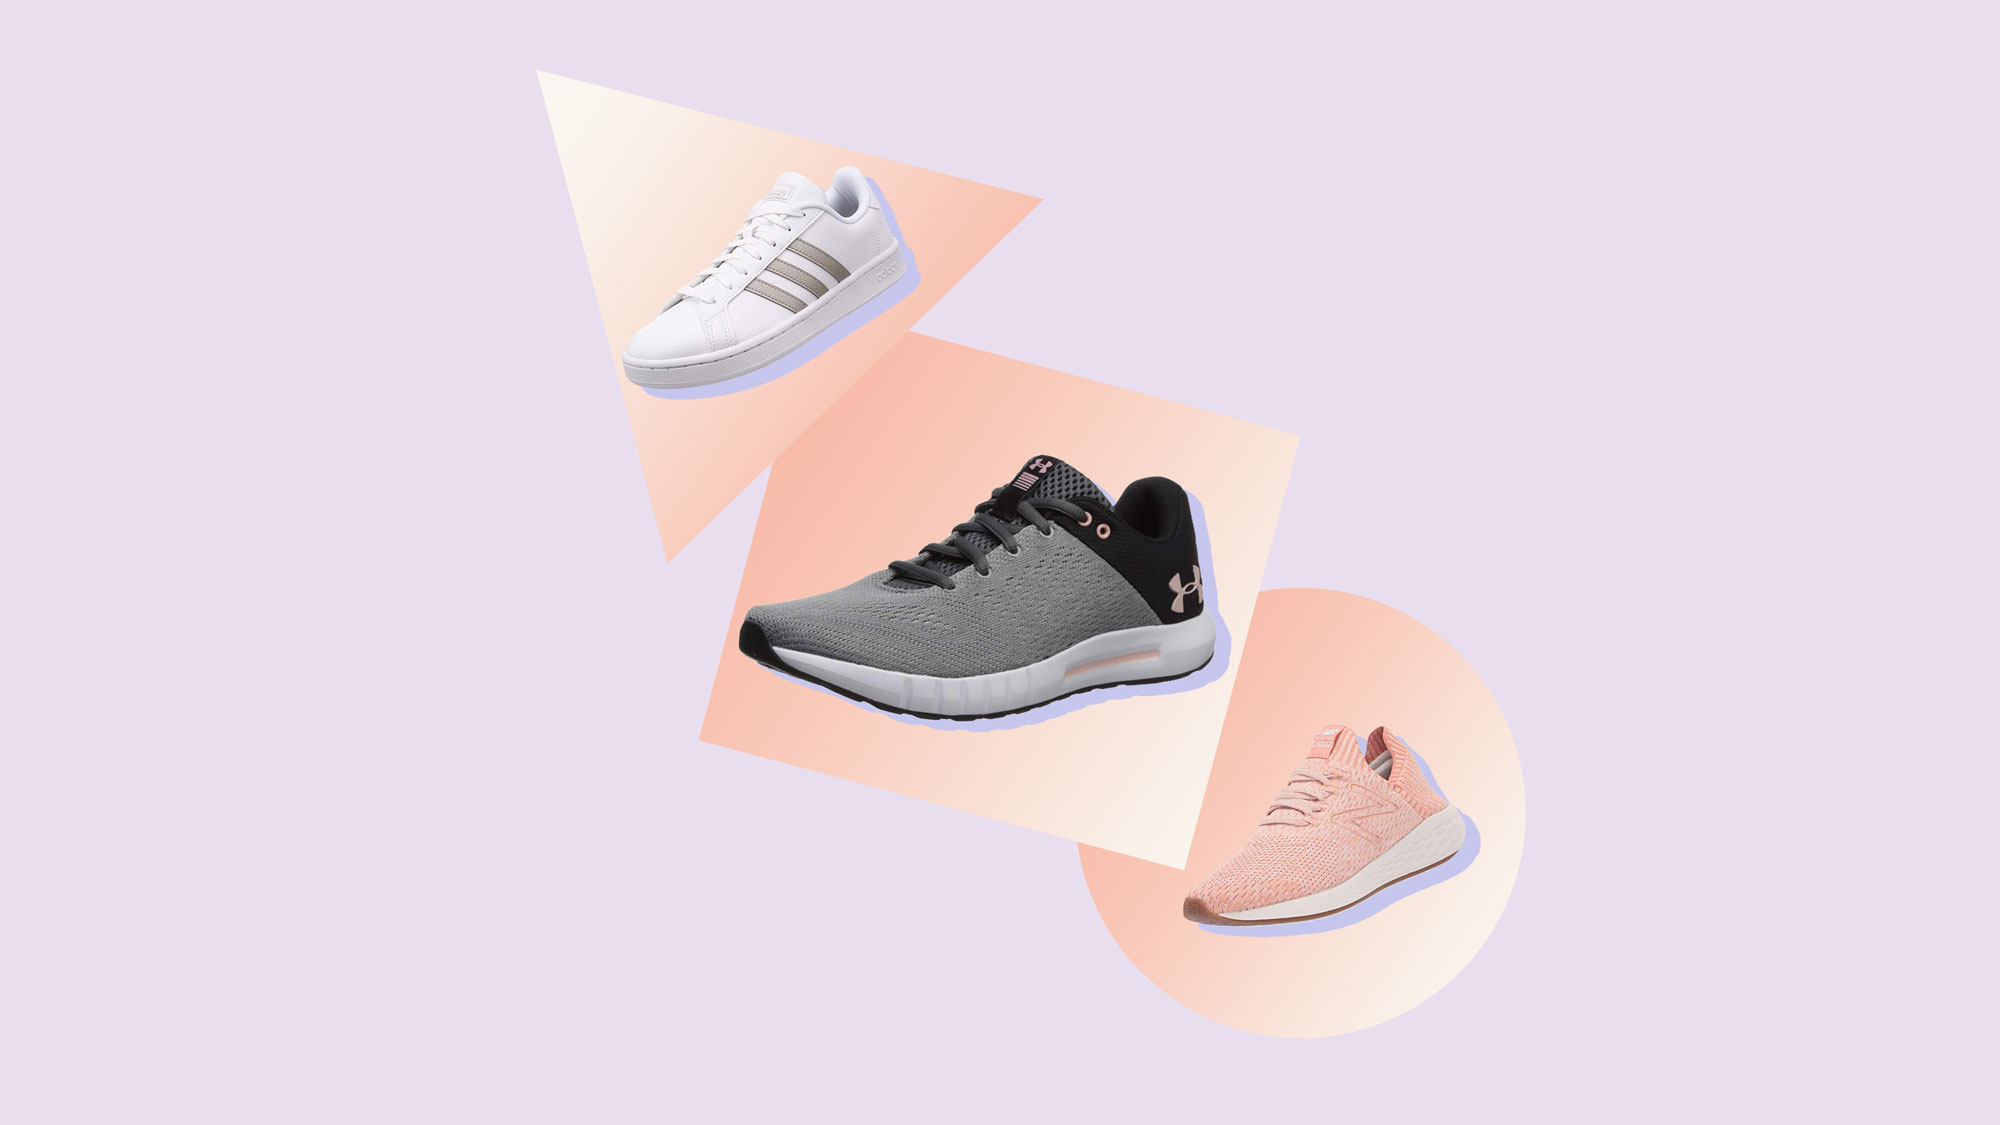 prime-day-2019 comfortable-shoes sneakers woman health wellbeing style fashion exercise workout sale shopping